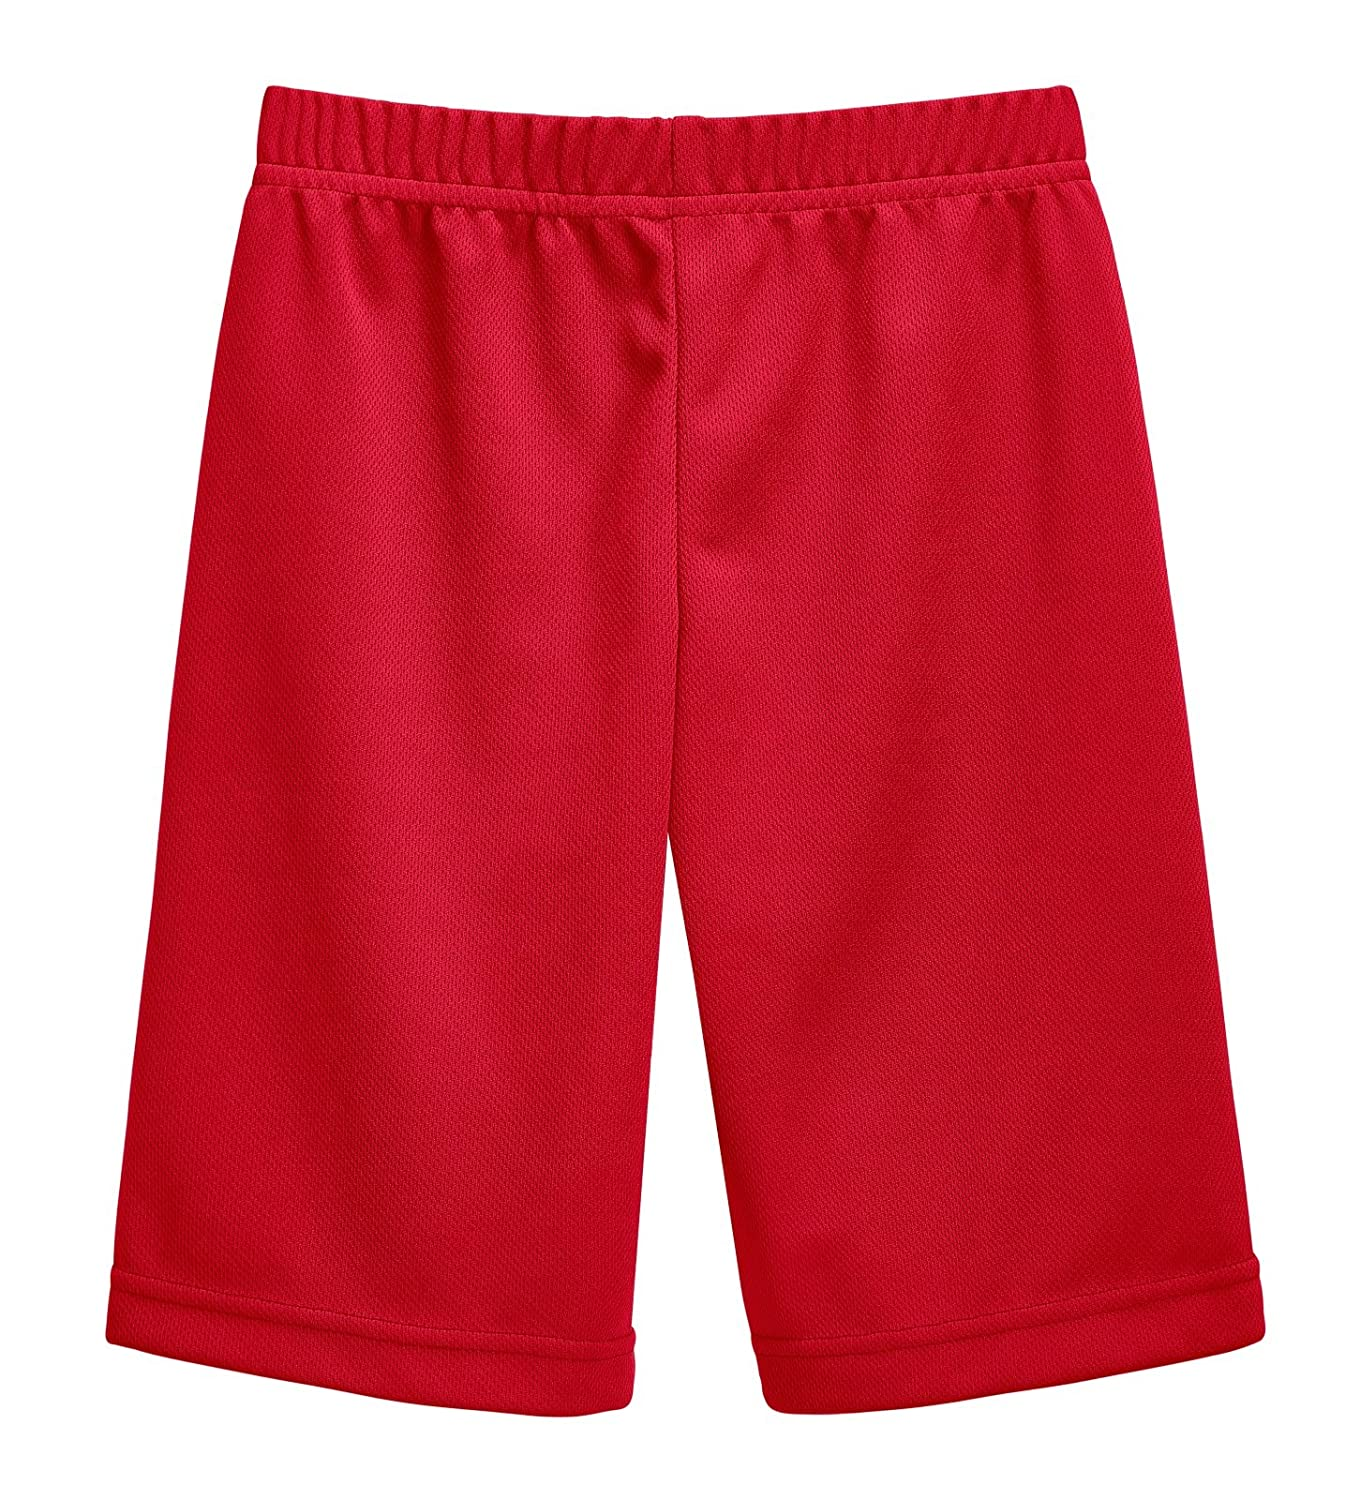 City Threads Athletic Shorts Boys Girls - Sports Camp Play School, Made in USA CT-SimpleAthleticShort